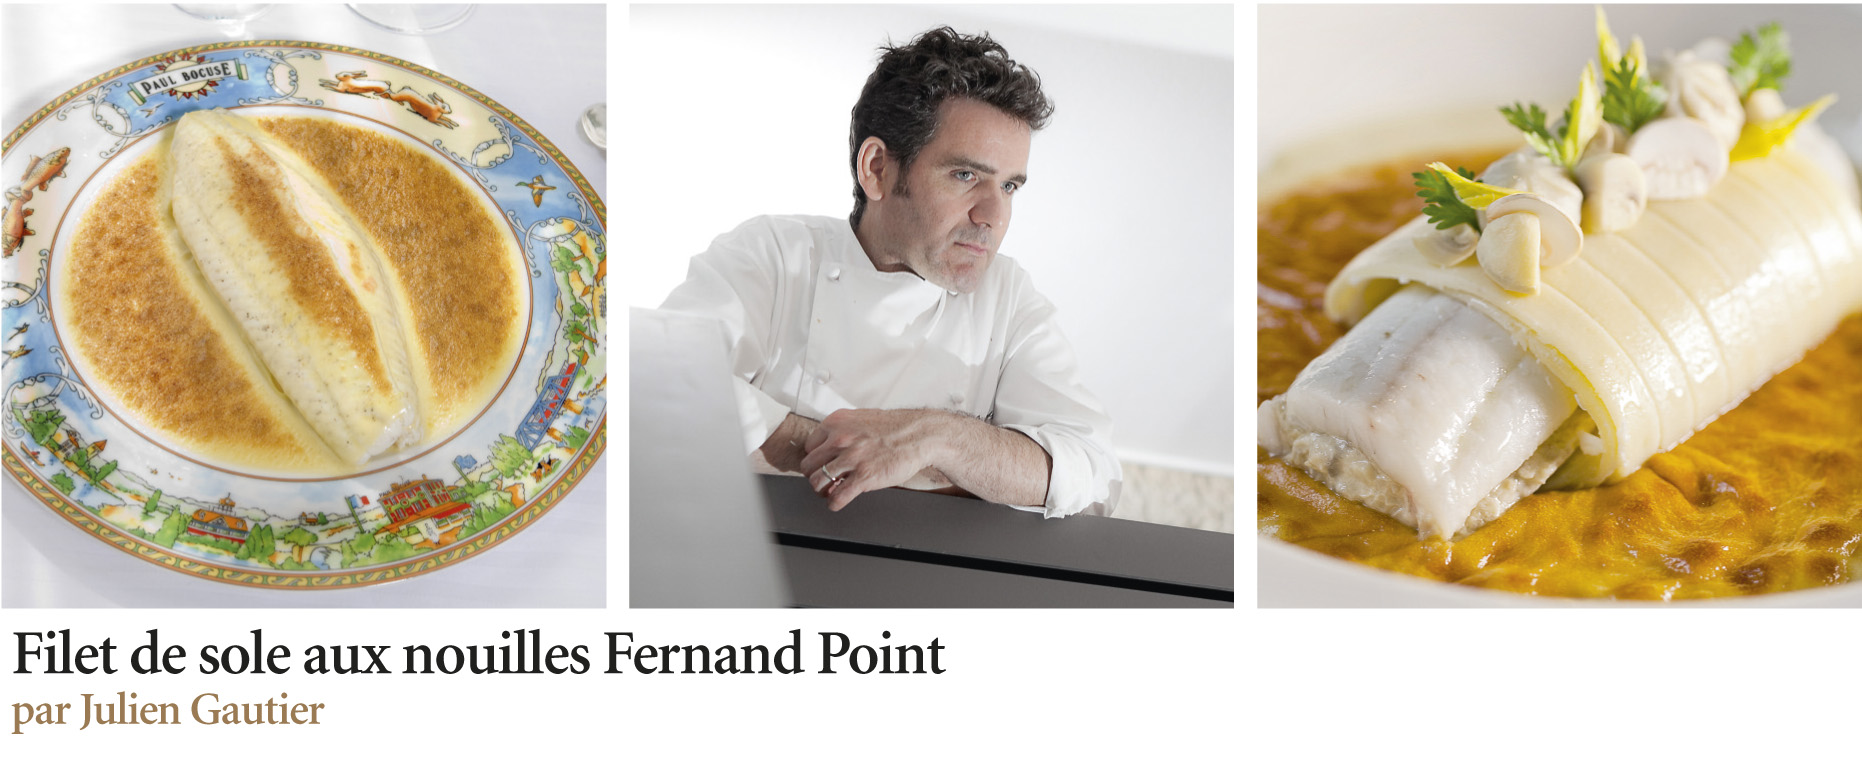 Filet de sole aux nouilles Fernand Point ()